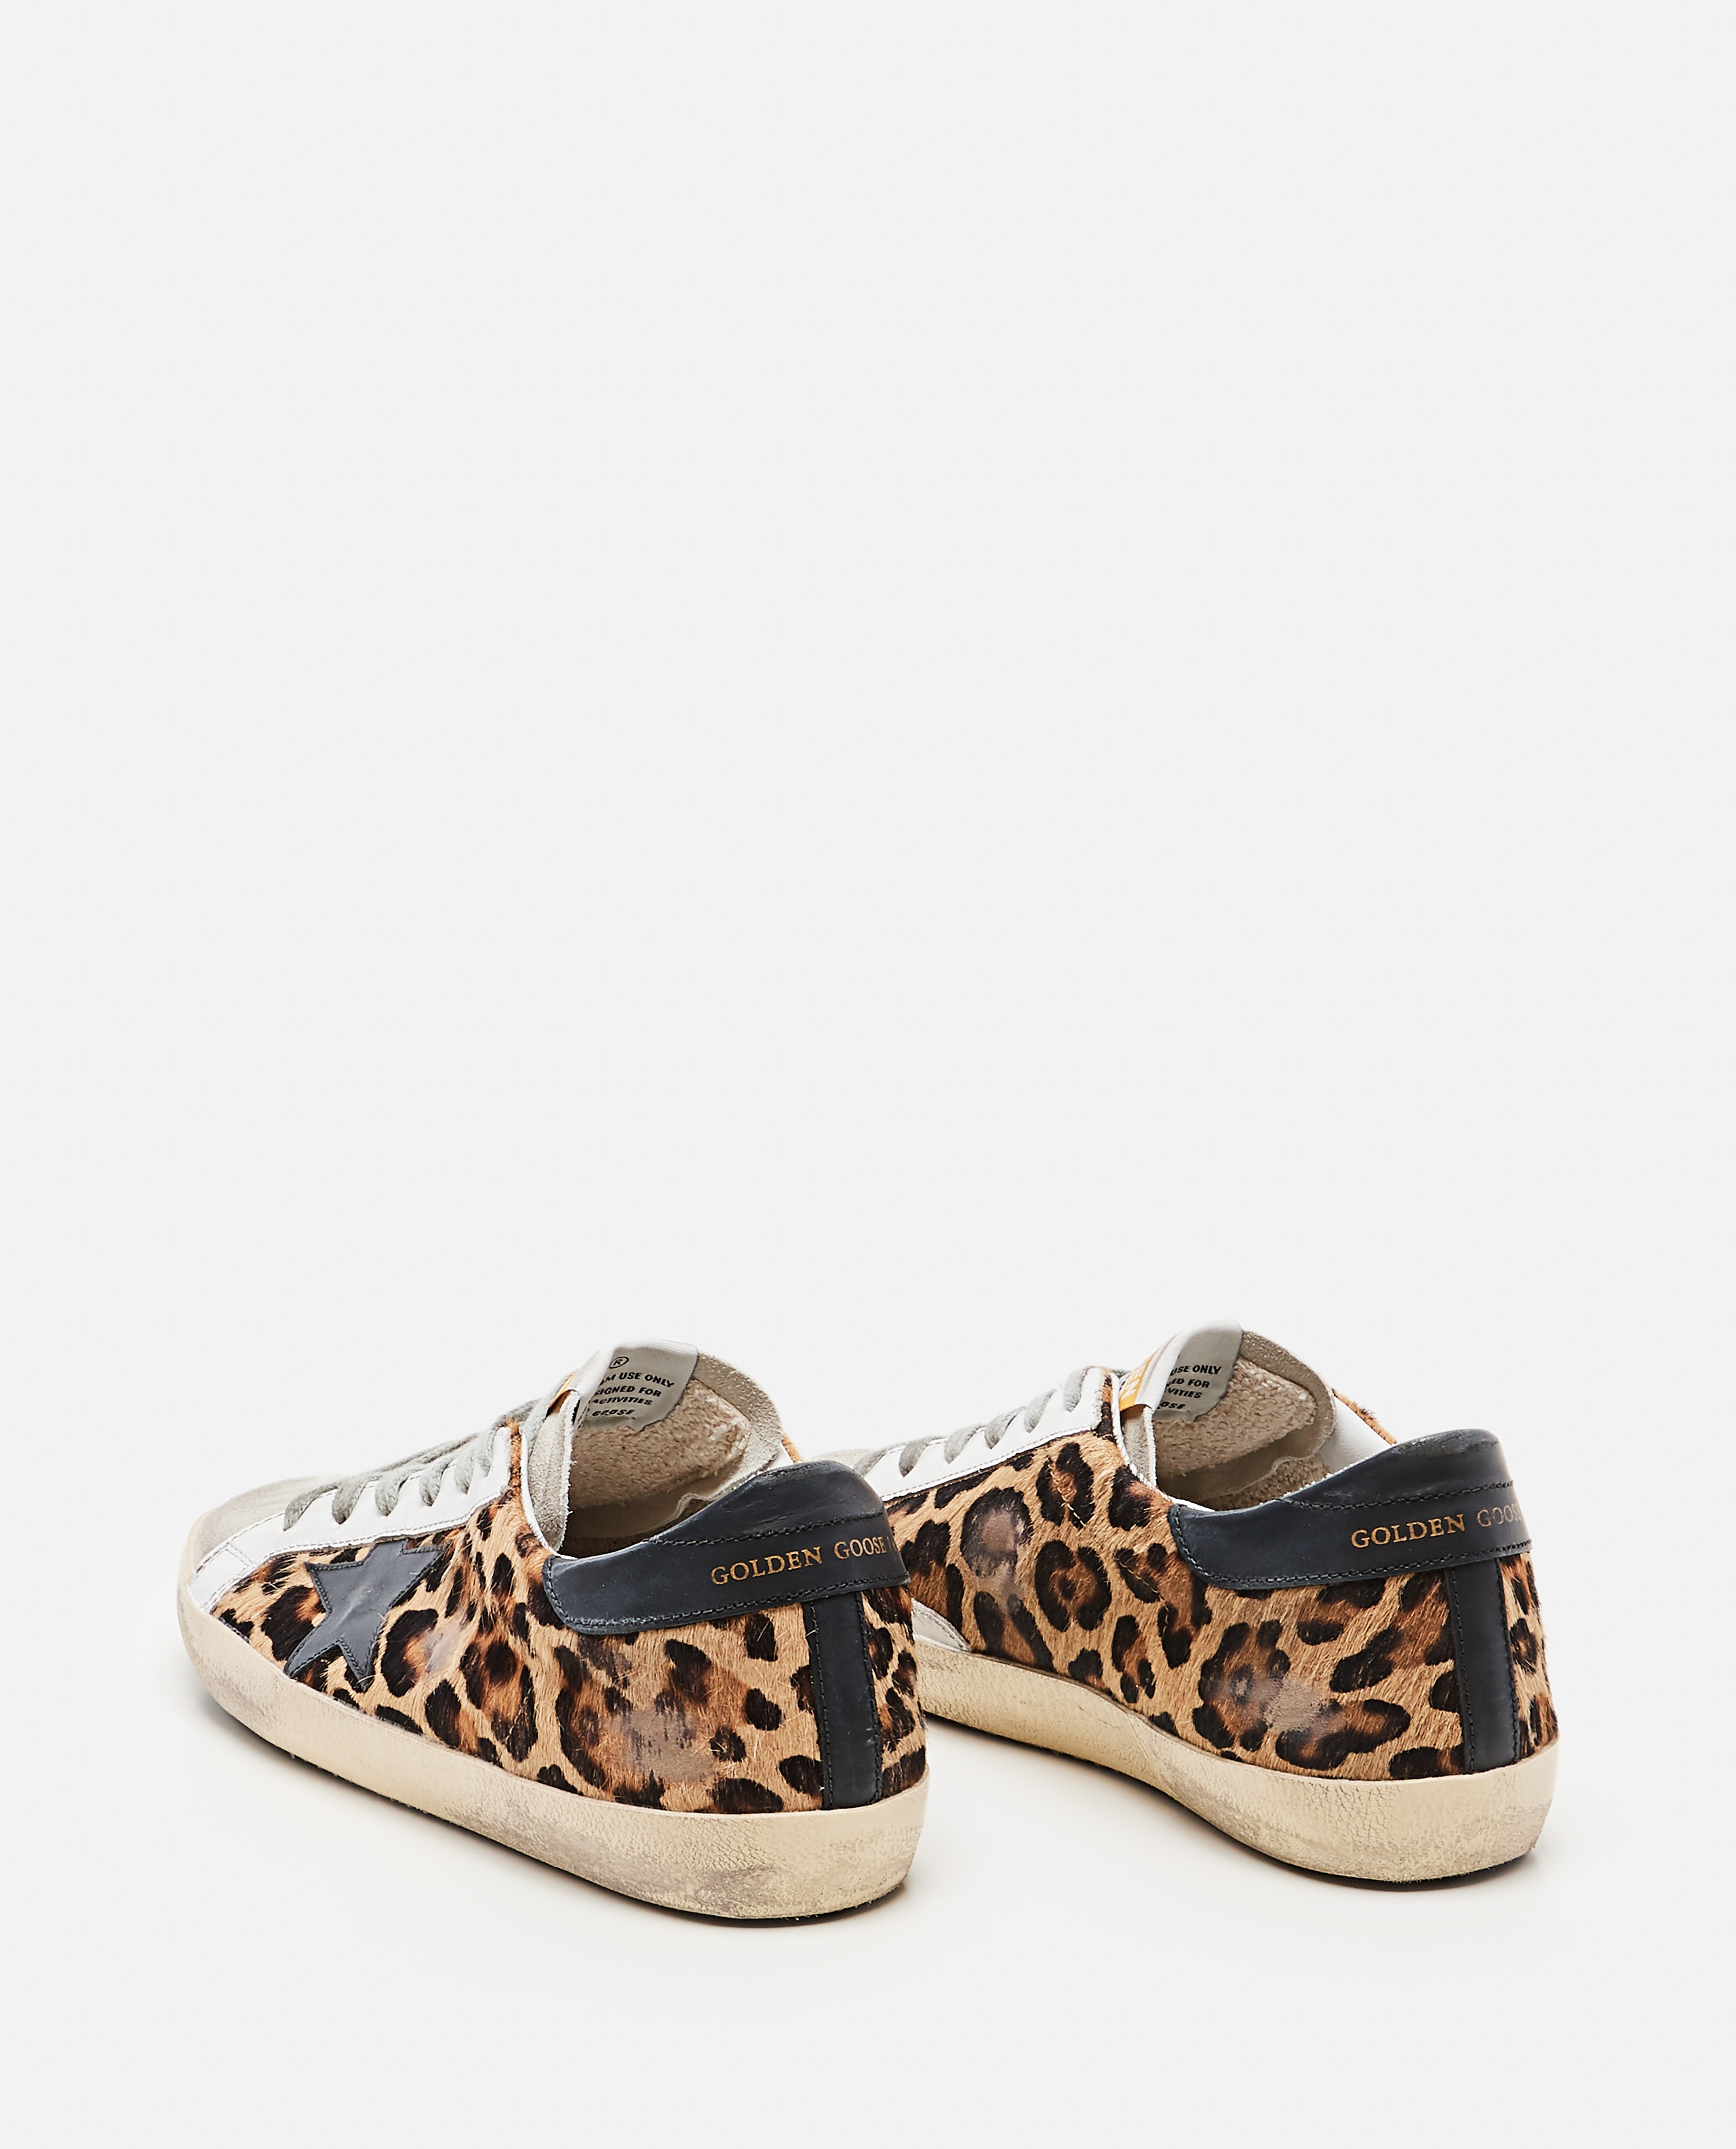 Superstar classic Golden Goose sneakers in spotted pony skin Donna Golden Goose 000286810042304 3